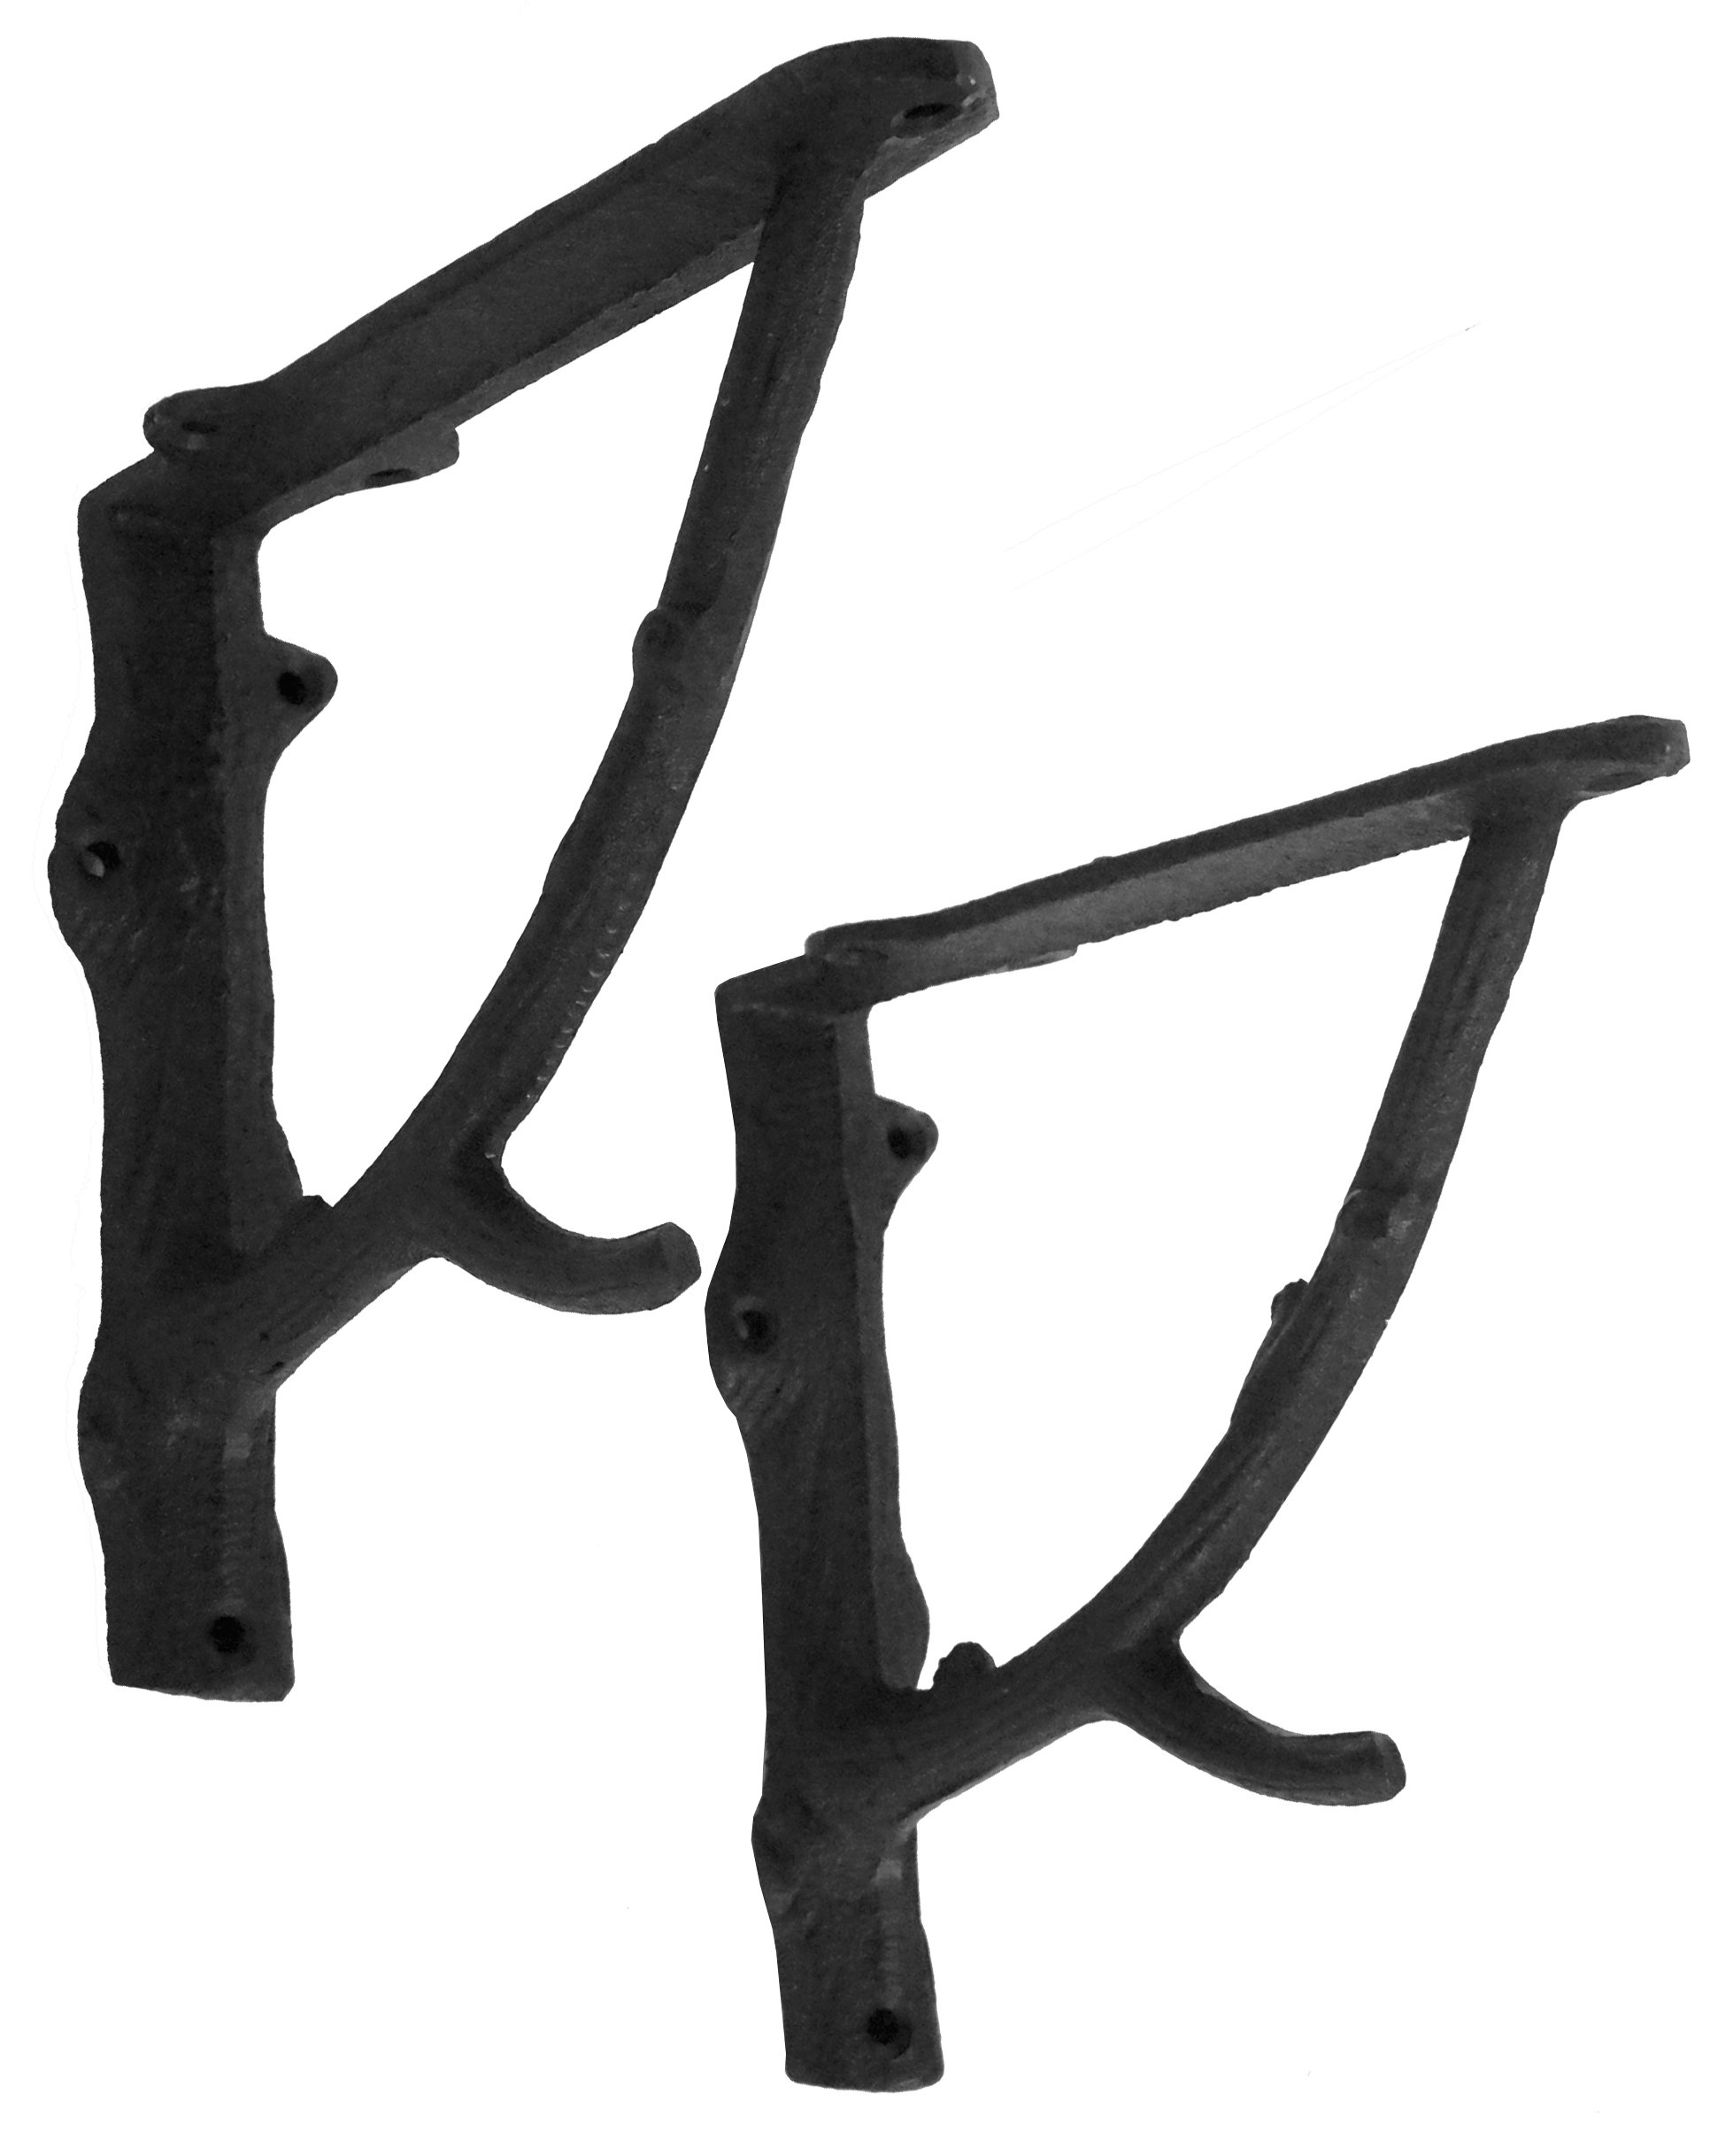 NACH js-90-078 Branch Wall Shelf Bracket 7''. Pack of 2 (7x2x7.3 inches) by NACH